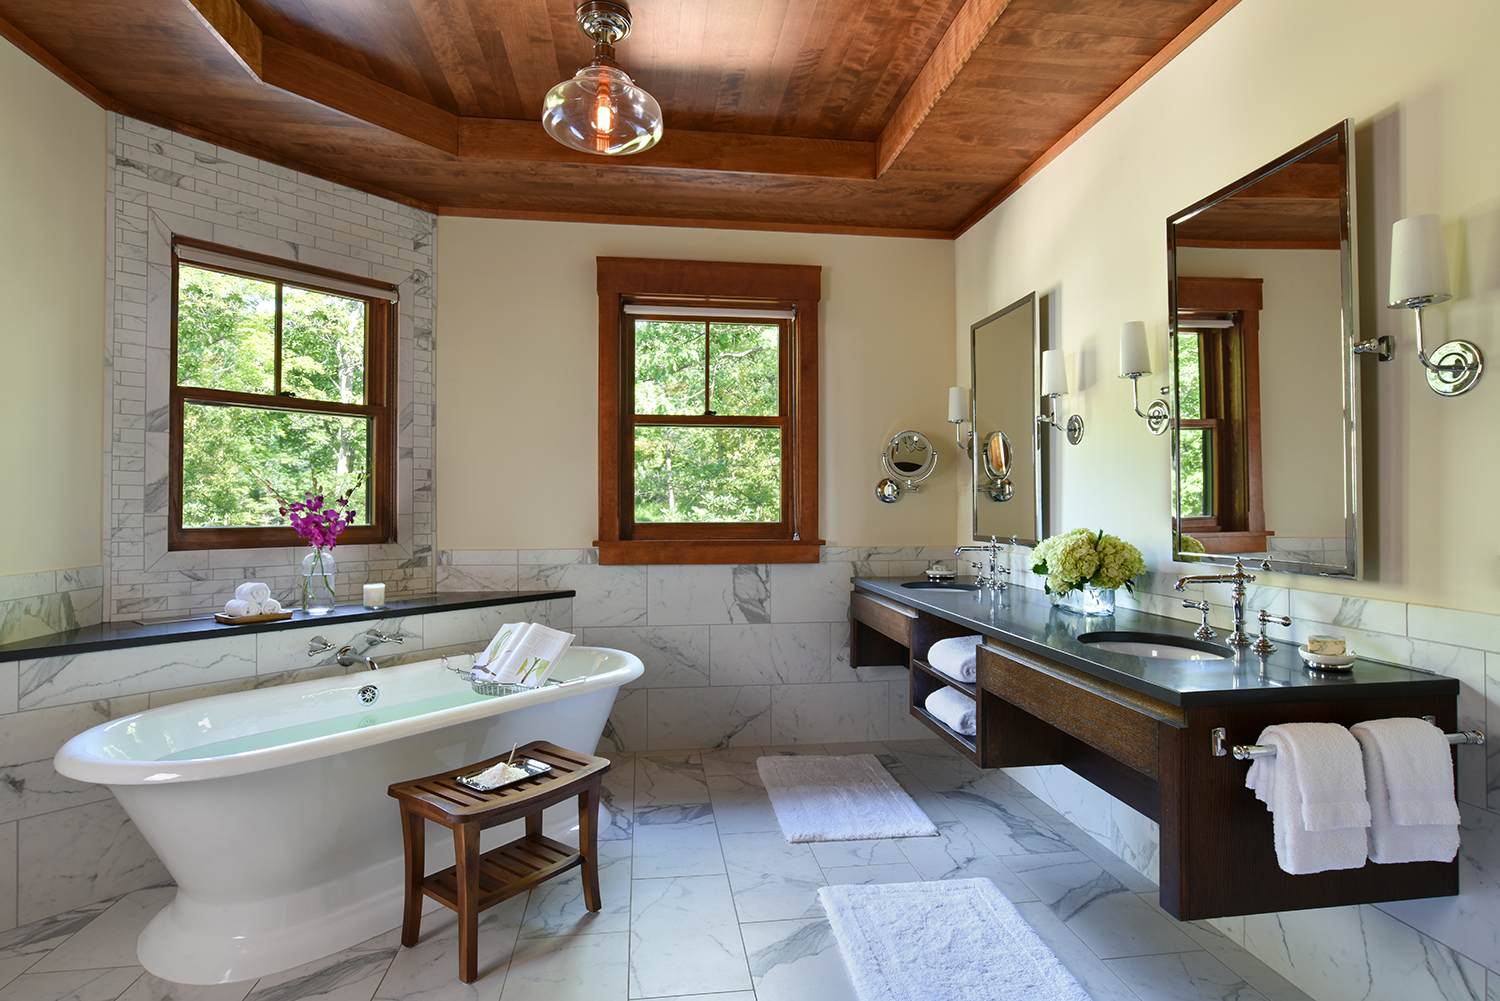 The luxurious bathrooms.